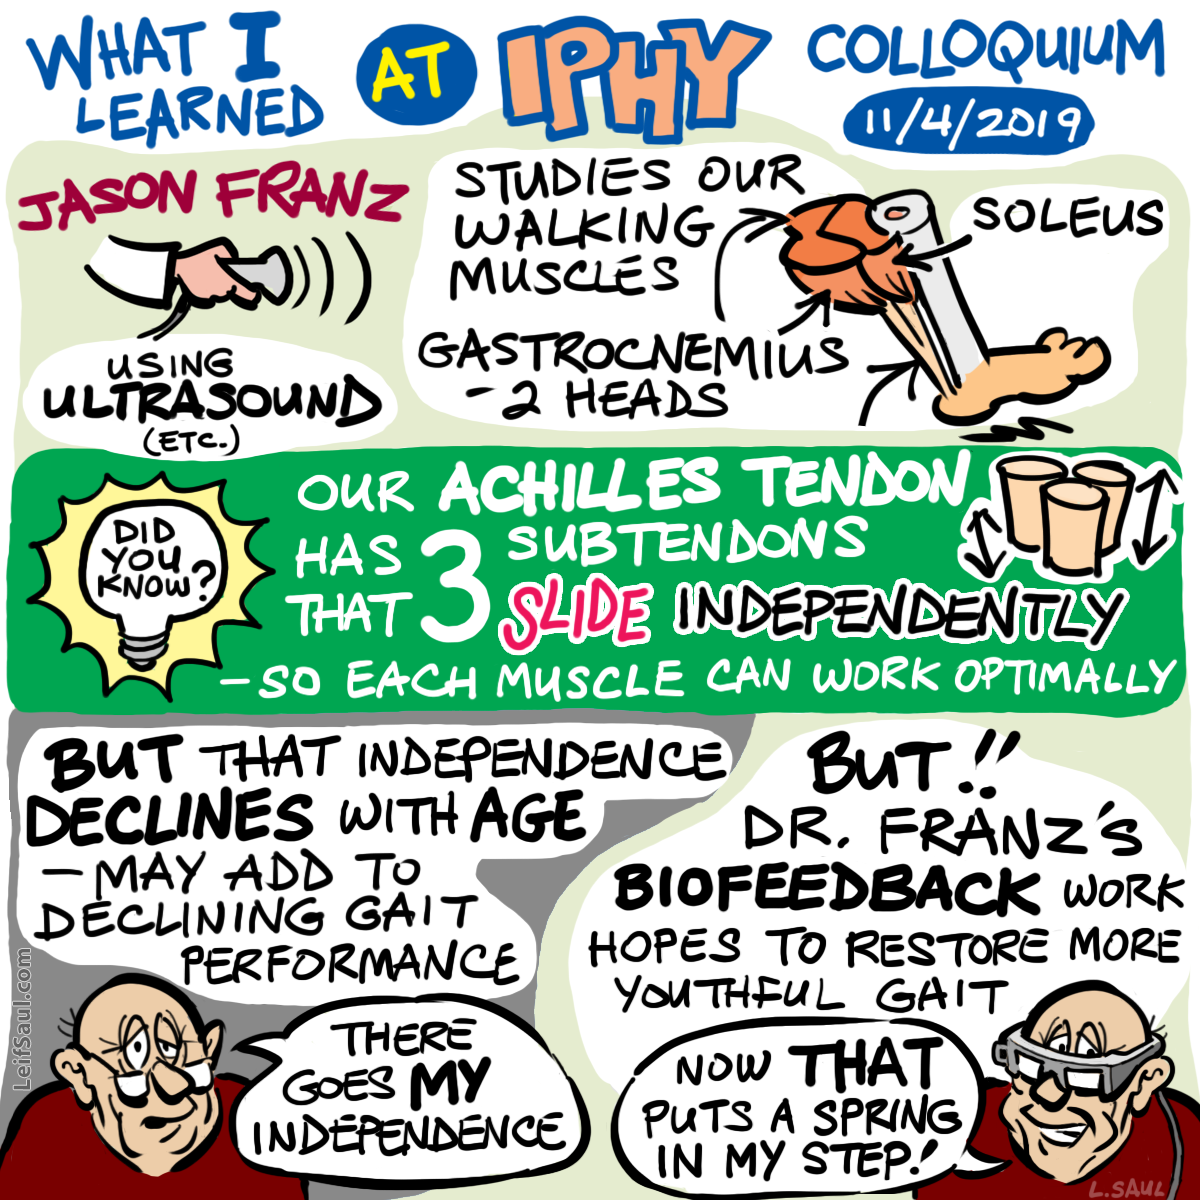 Cartoon representation of colloquium talk by Jason Franz at Integrative Physiology Department, CU Boulder, November 4, 2019